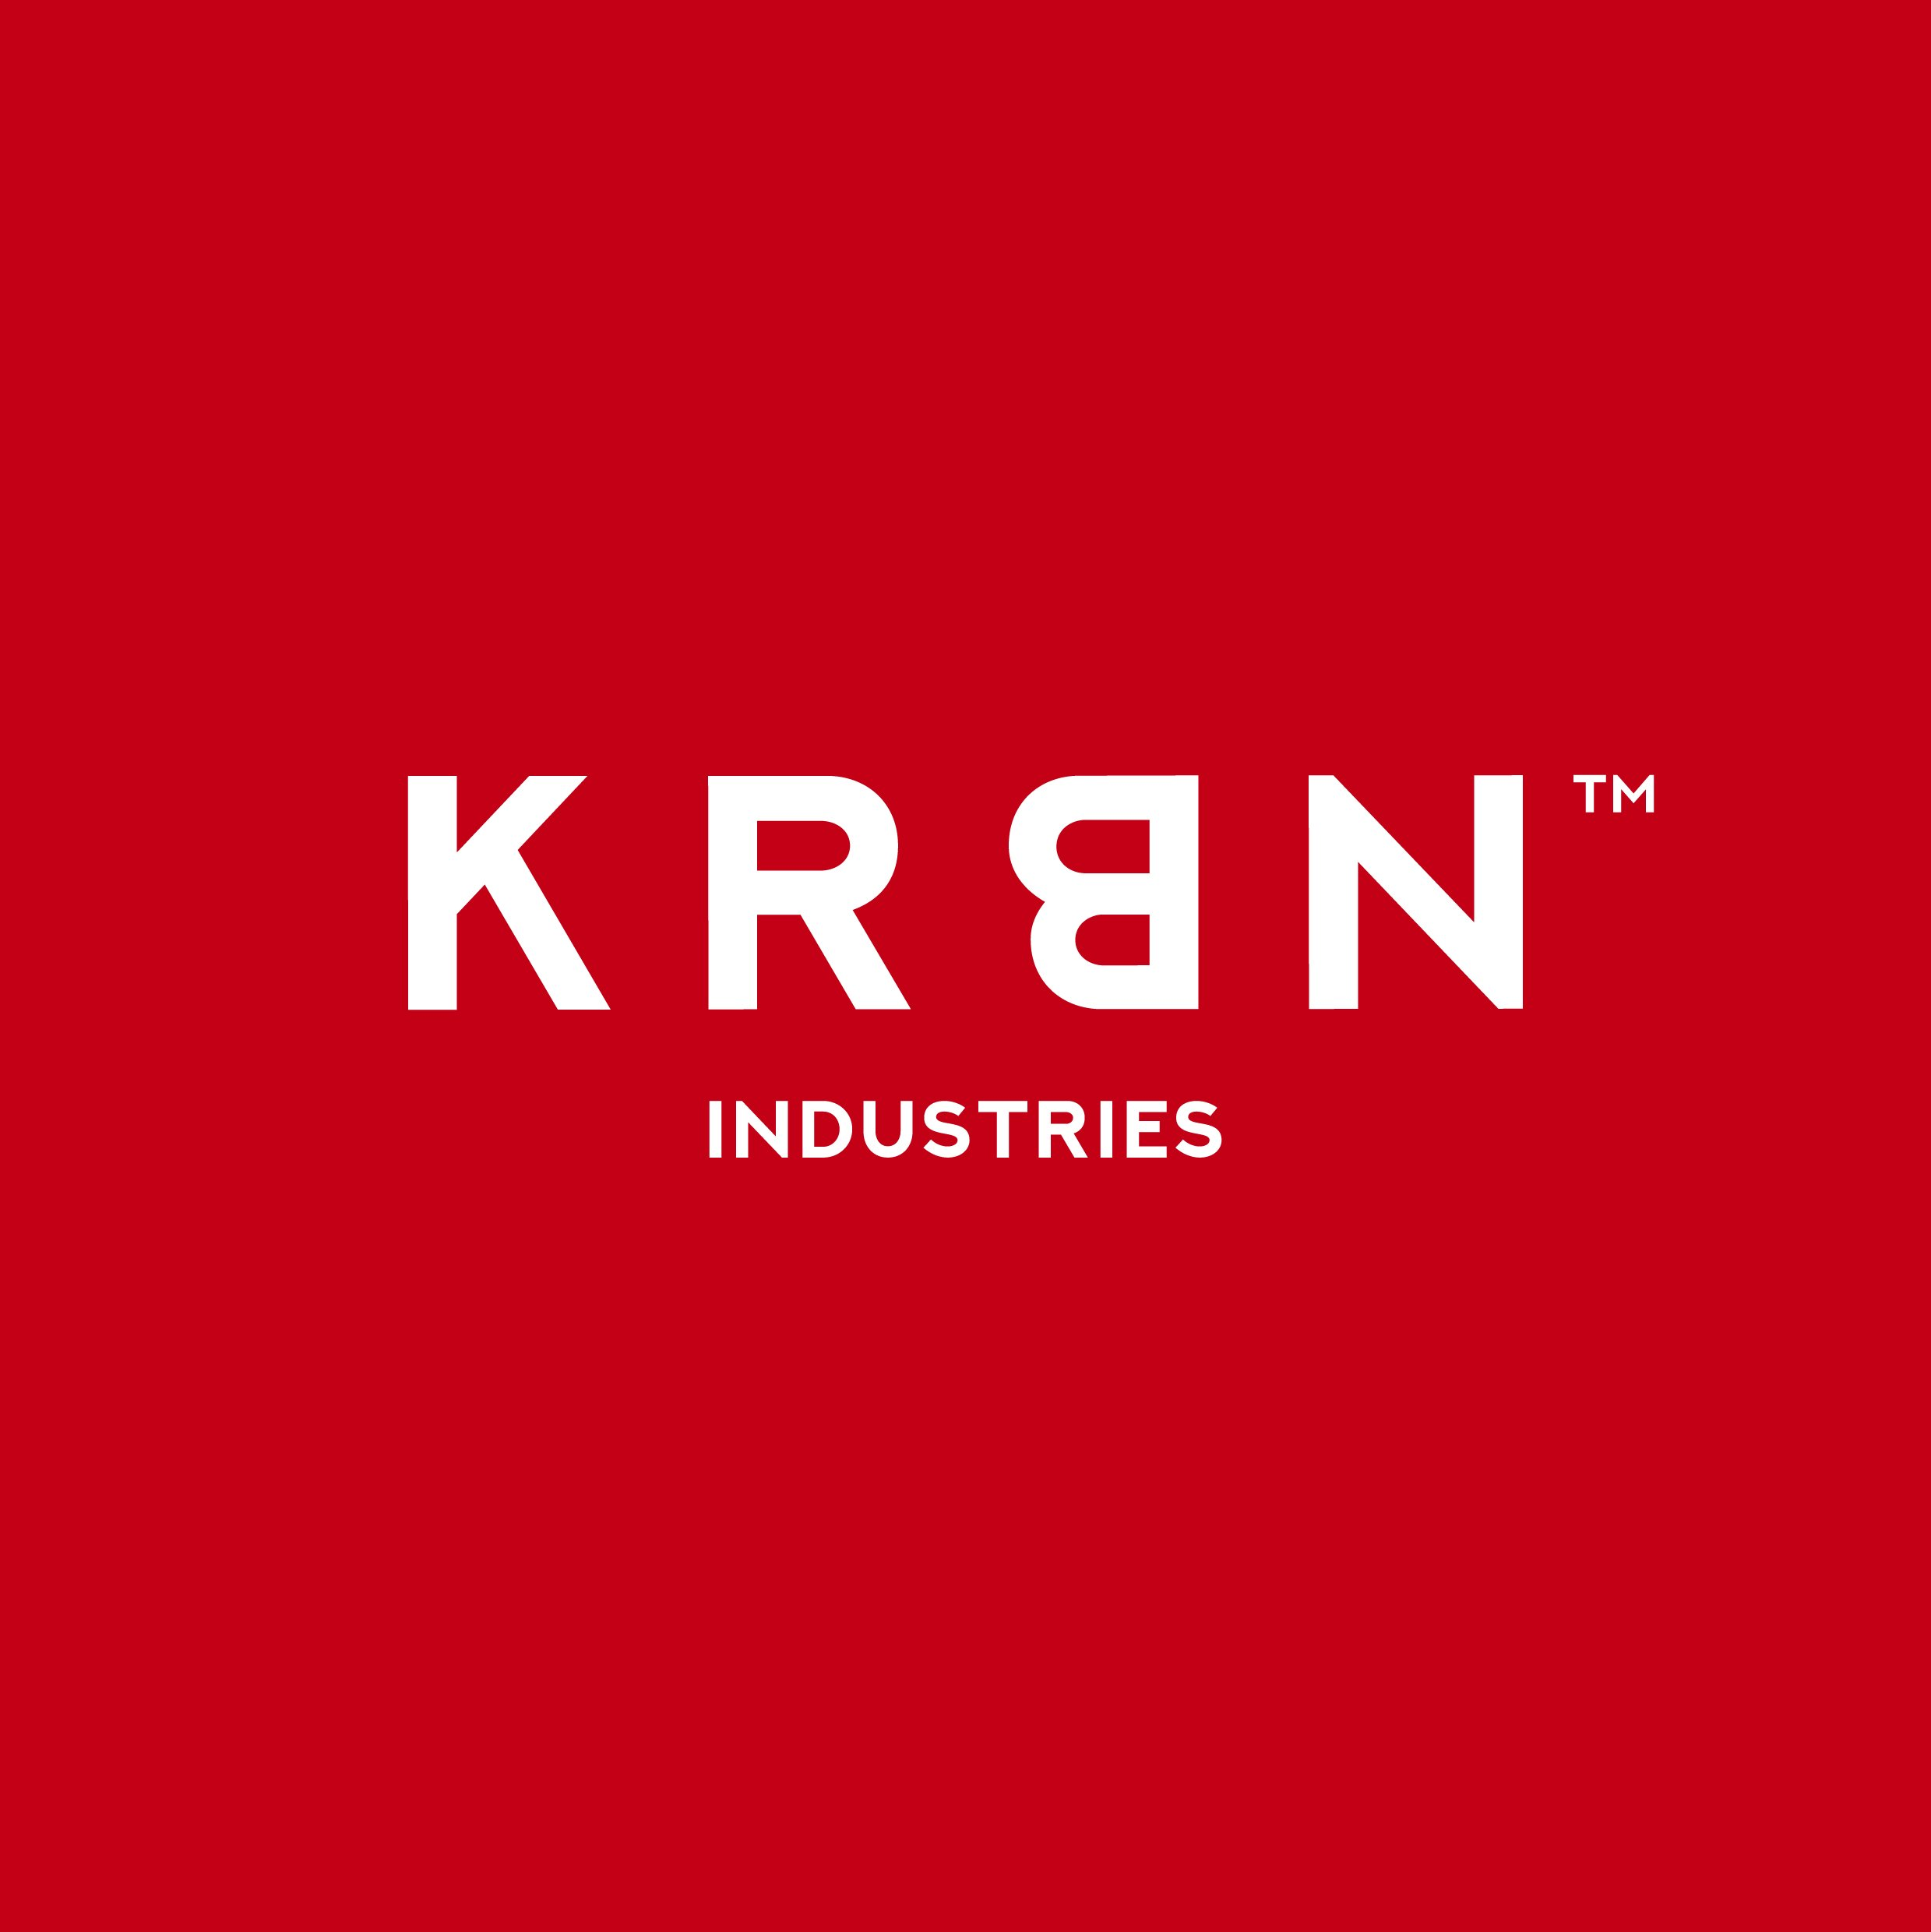 KRBN Industries